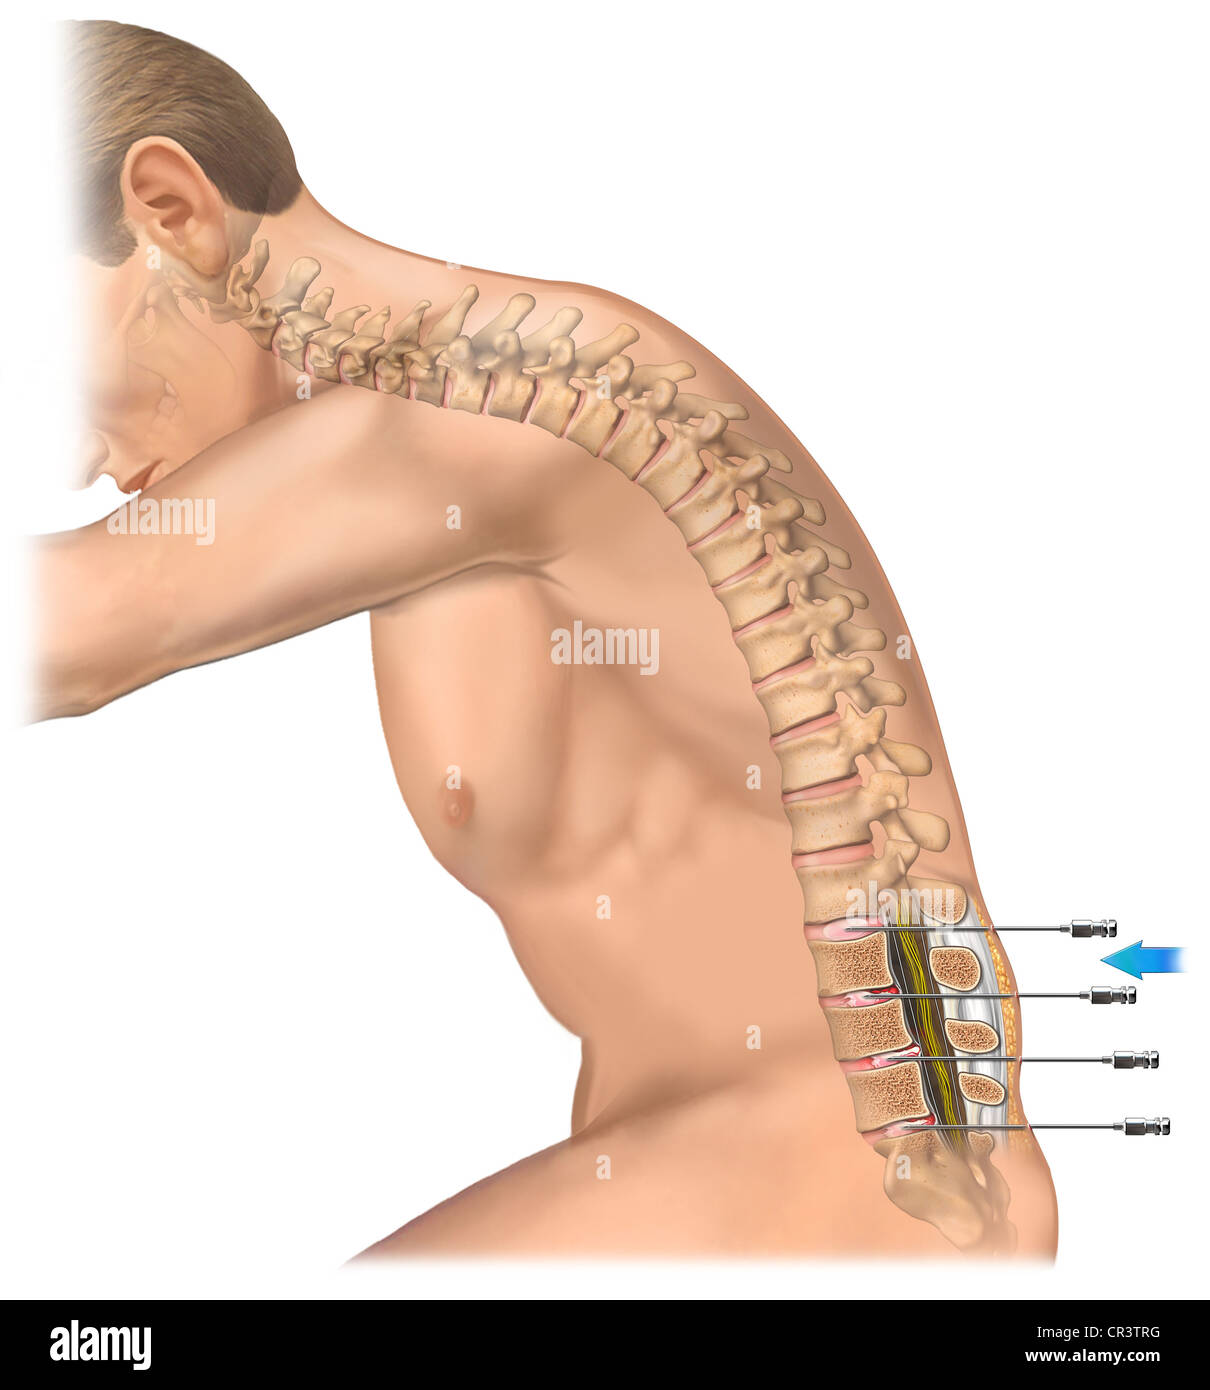 Lumbar Spine Sagittal Stock Photos Lumbar Spine Sagittal Stock